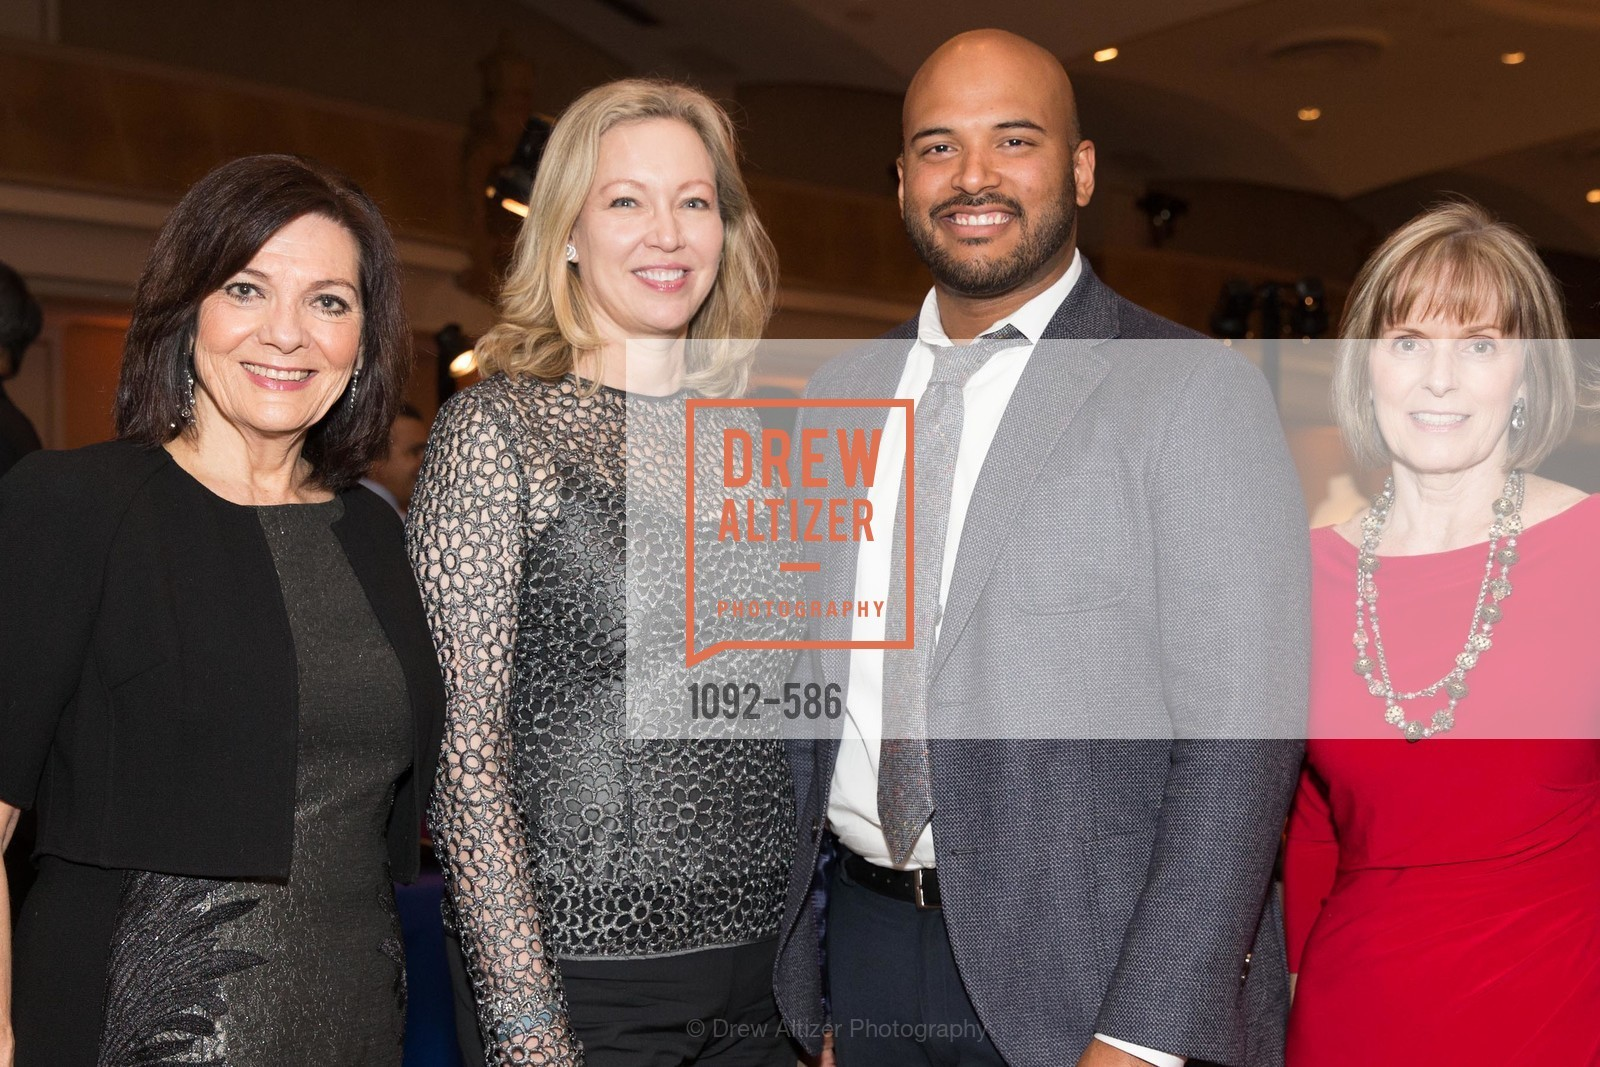 Pamela Culp, Betsy Vobach, Samil Rivera, Pat Nelson, 2014 Bay Area ARTHRITIS AUXILLIARY Benefit & Fashion Show, US, October 2nd, 2014,Drew Altizer, Drew Altizer Photography, full-service event agency, private events, San Francisco photographer, photographer California